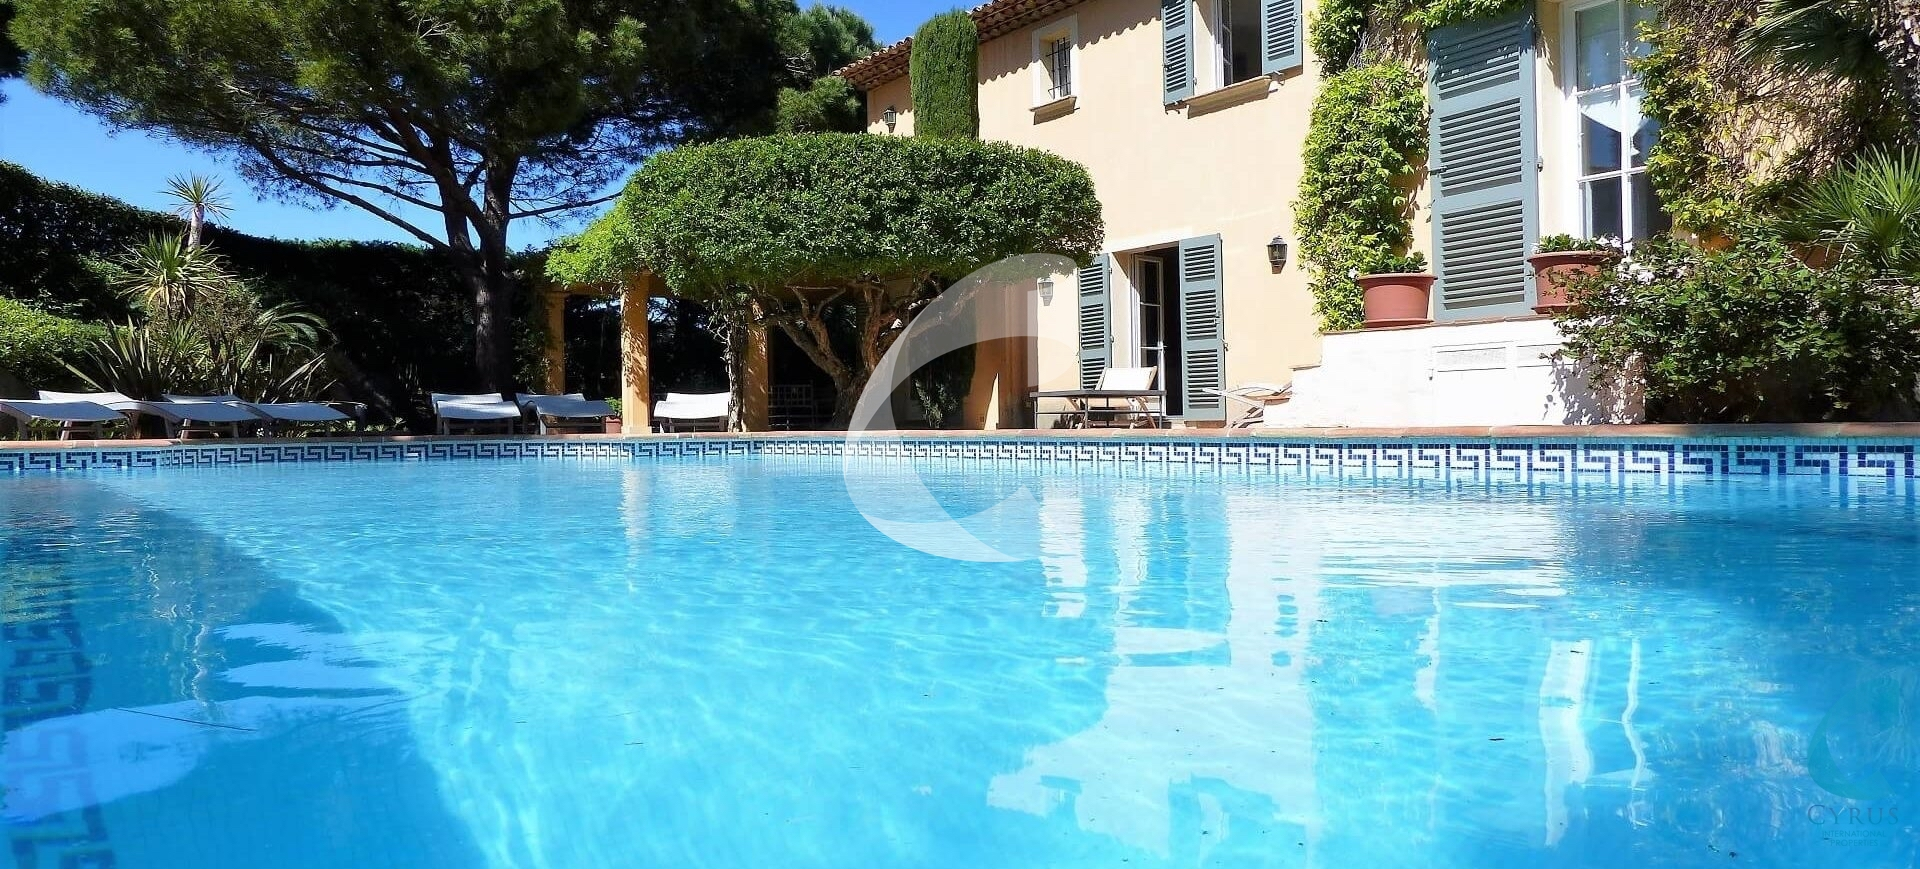 Hotel Saint-Tropez pool